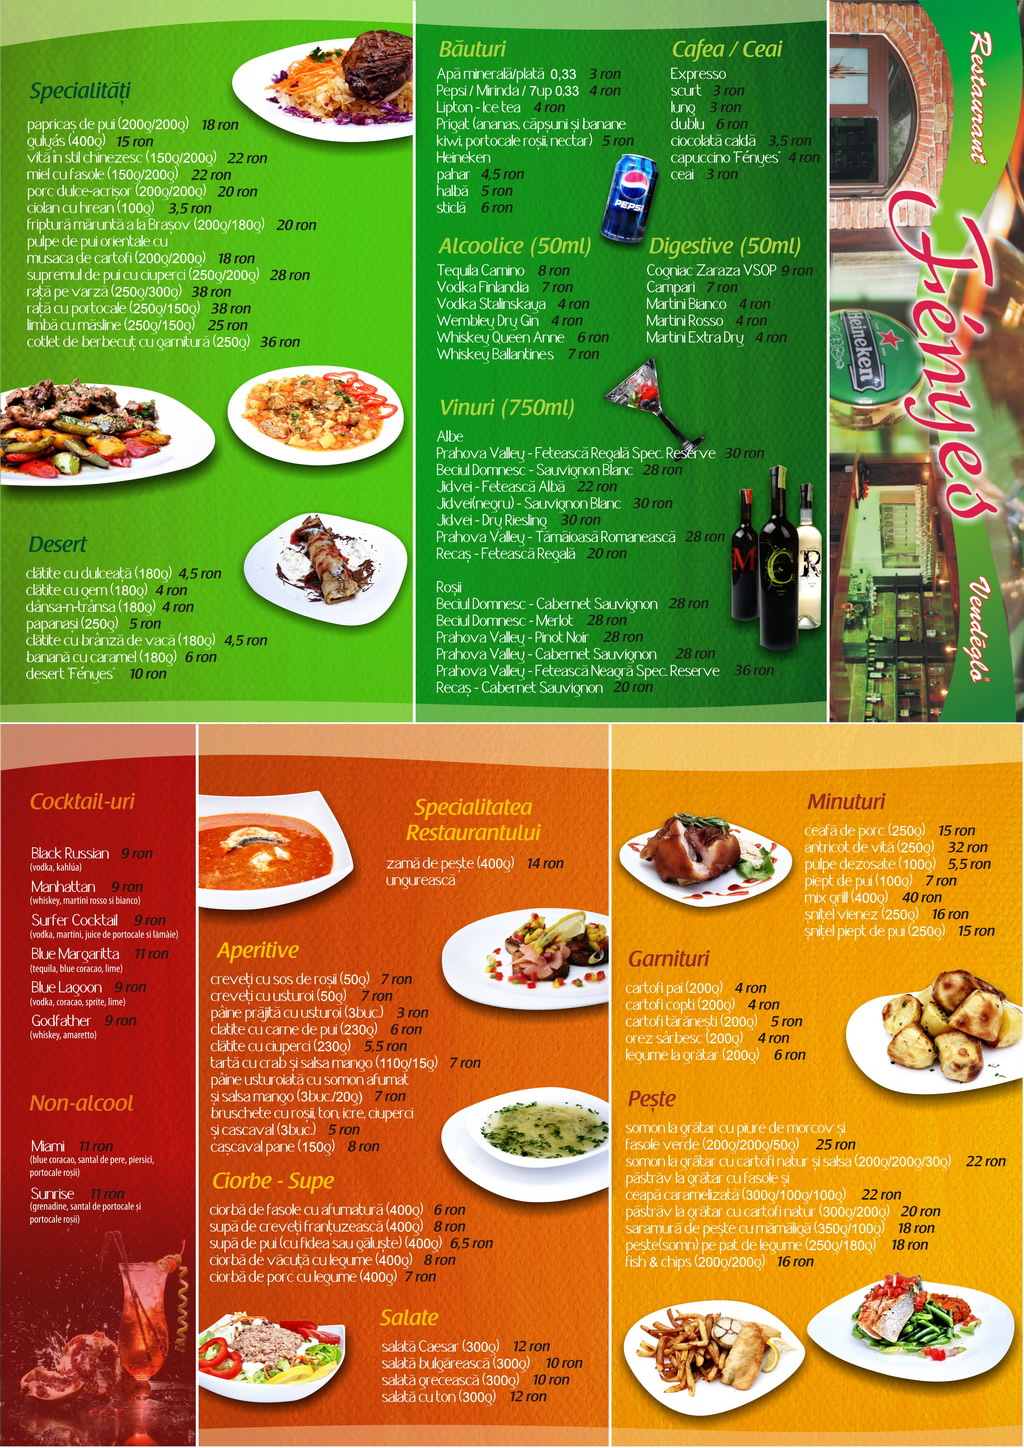 Food and drinks menu by djdevy on deviantart for Artistic cuisine menu